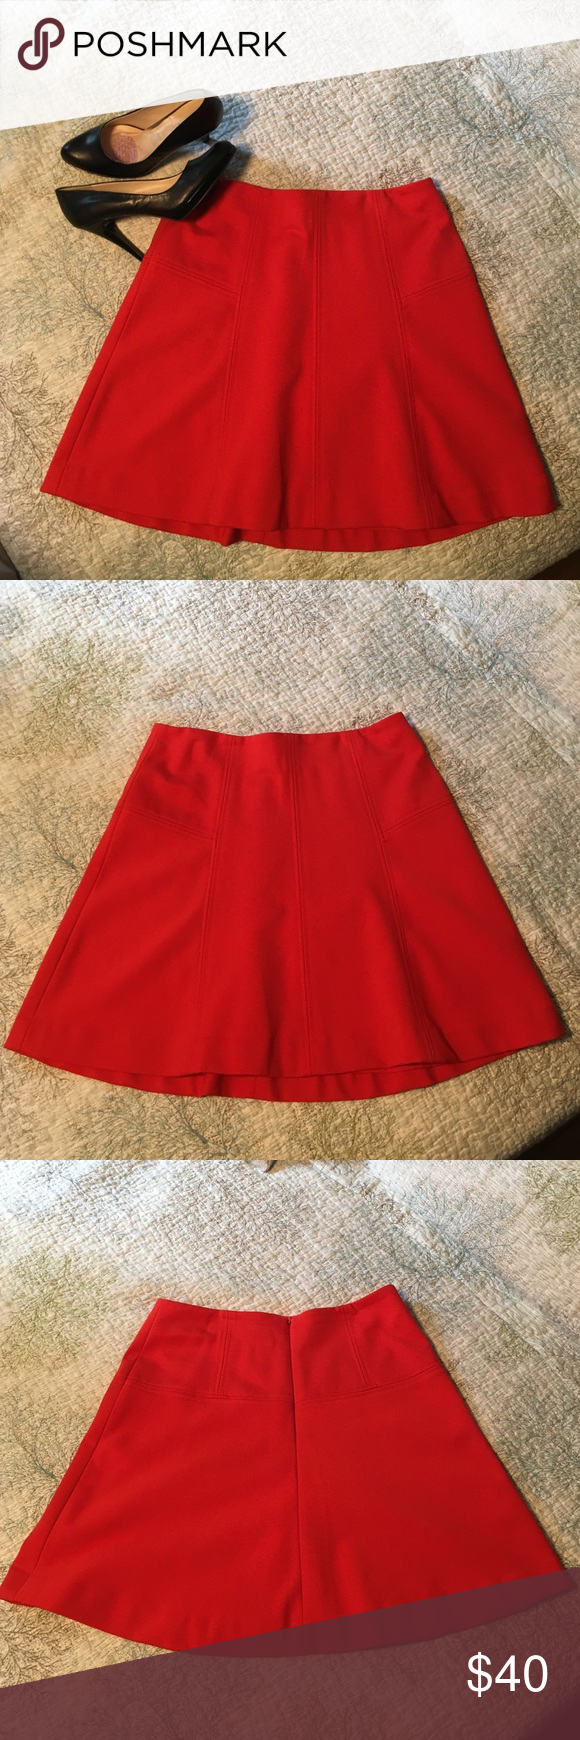 Beautiful red skirt Red skirt from The Loft. The shell is 67% rayon, 28% nylon, 5% spandex. The lining is 100% polyester. Very comfortable. Goes great with boots for the fall or sandals for the summer. Able to dress for work or a night out, very versatile. LOFT Skirts A-Line or Full